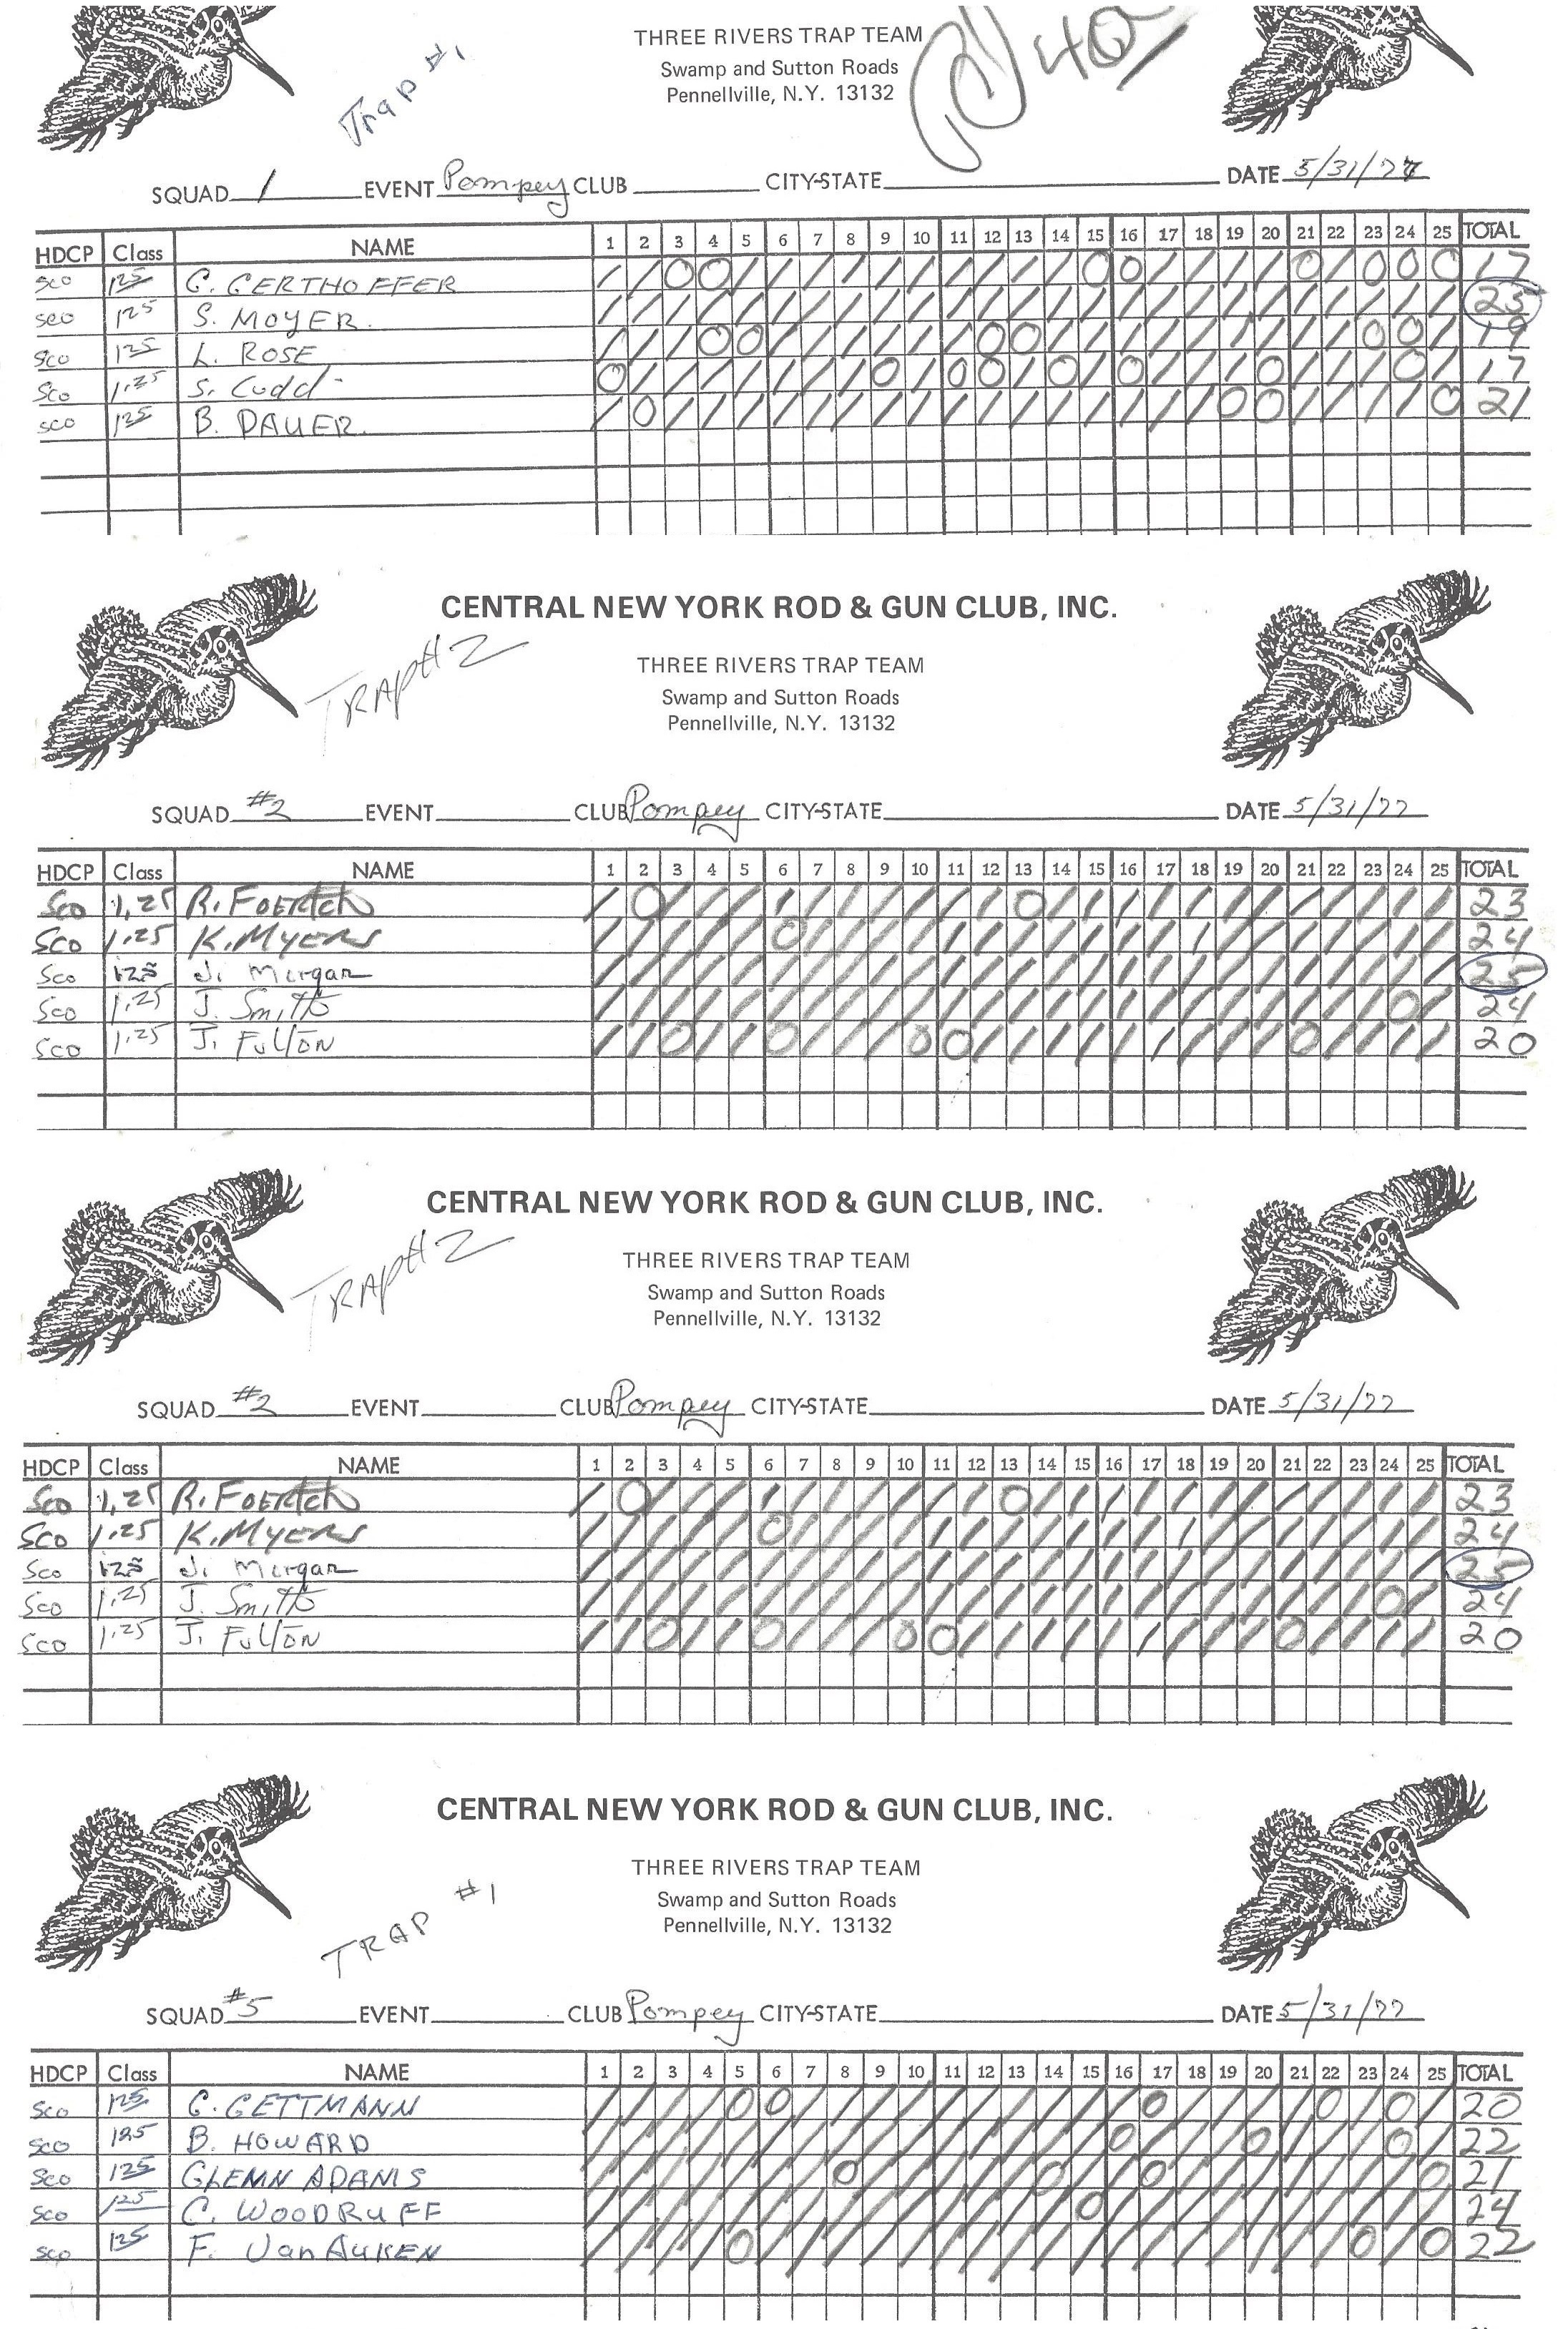 1977 CNYTL 3 Rivers Scoresheets 0531